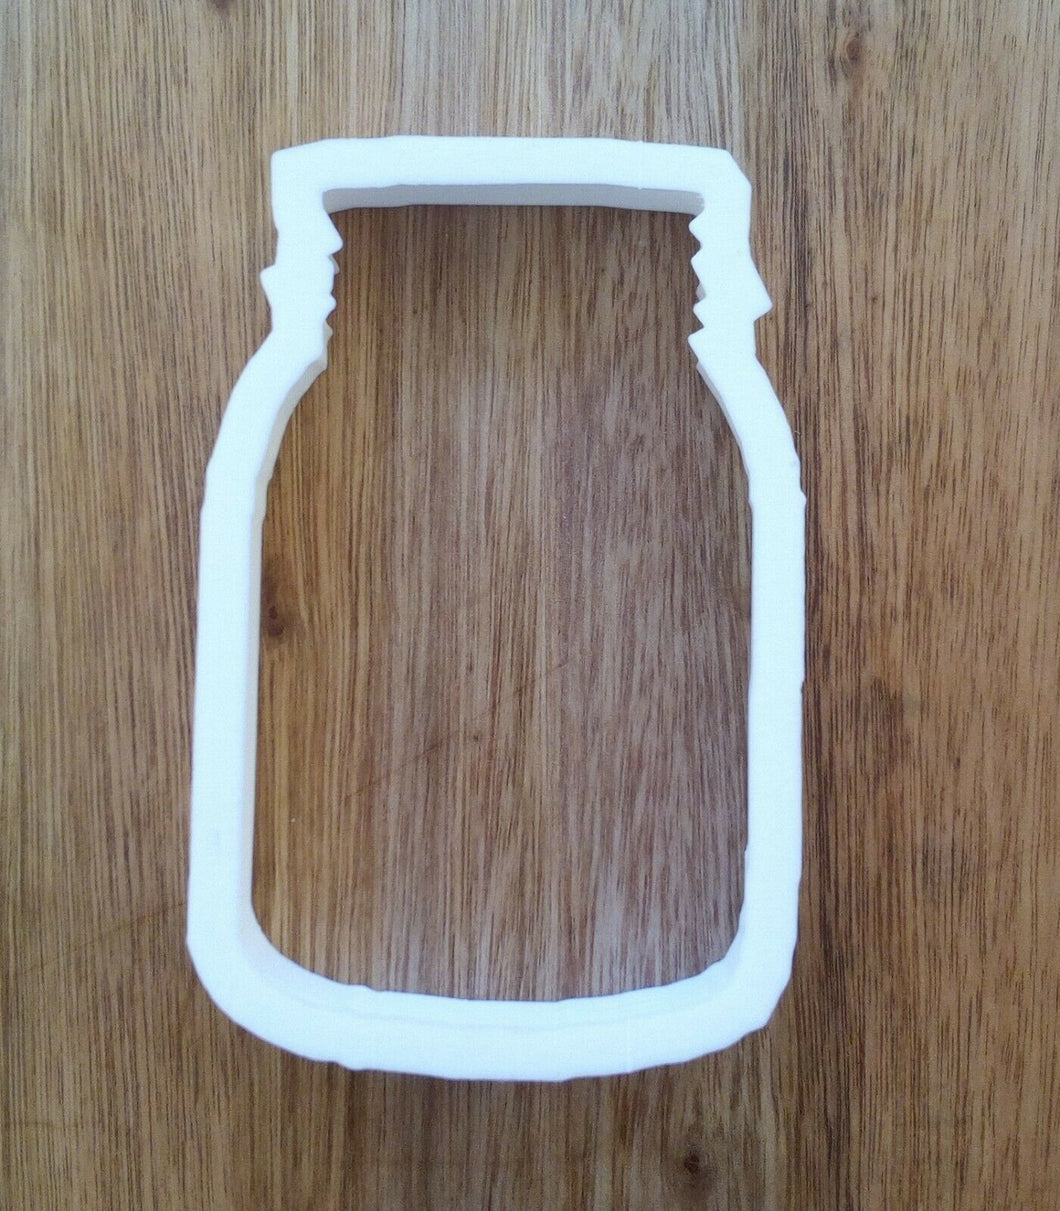 Jam Jar Cookie Cutter